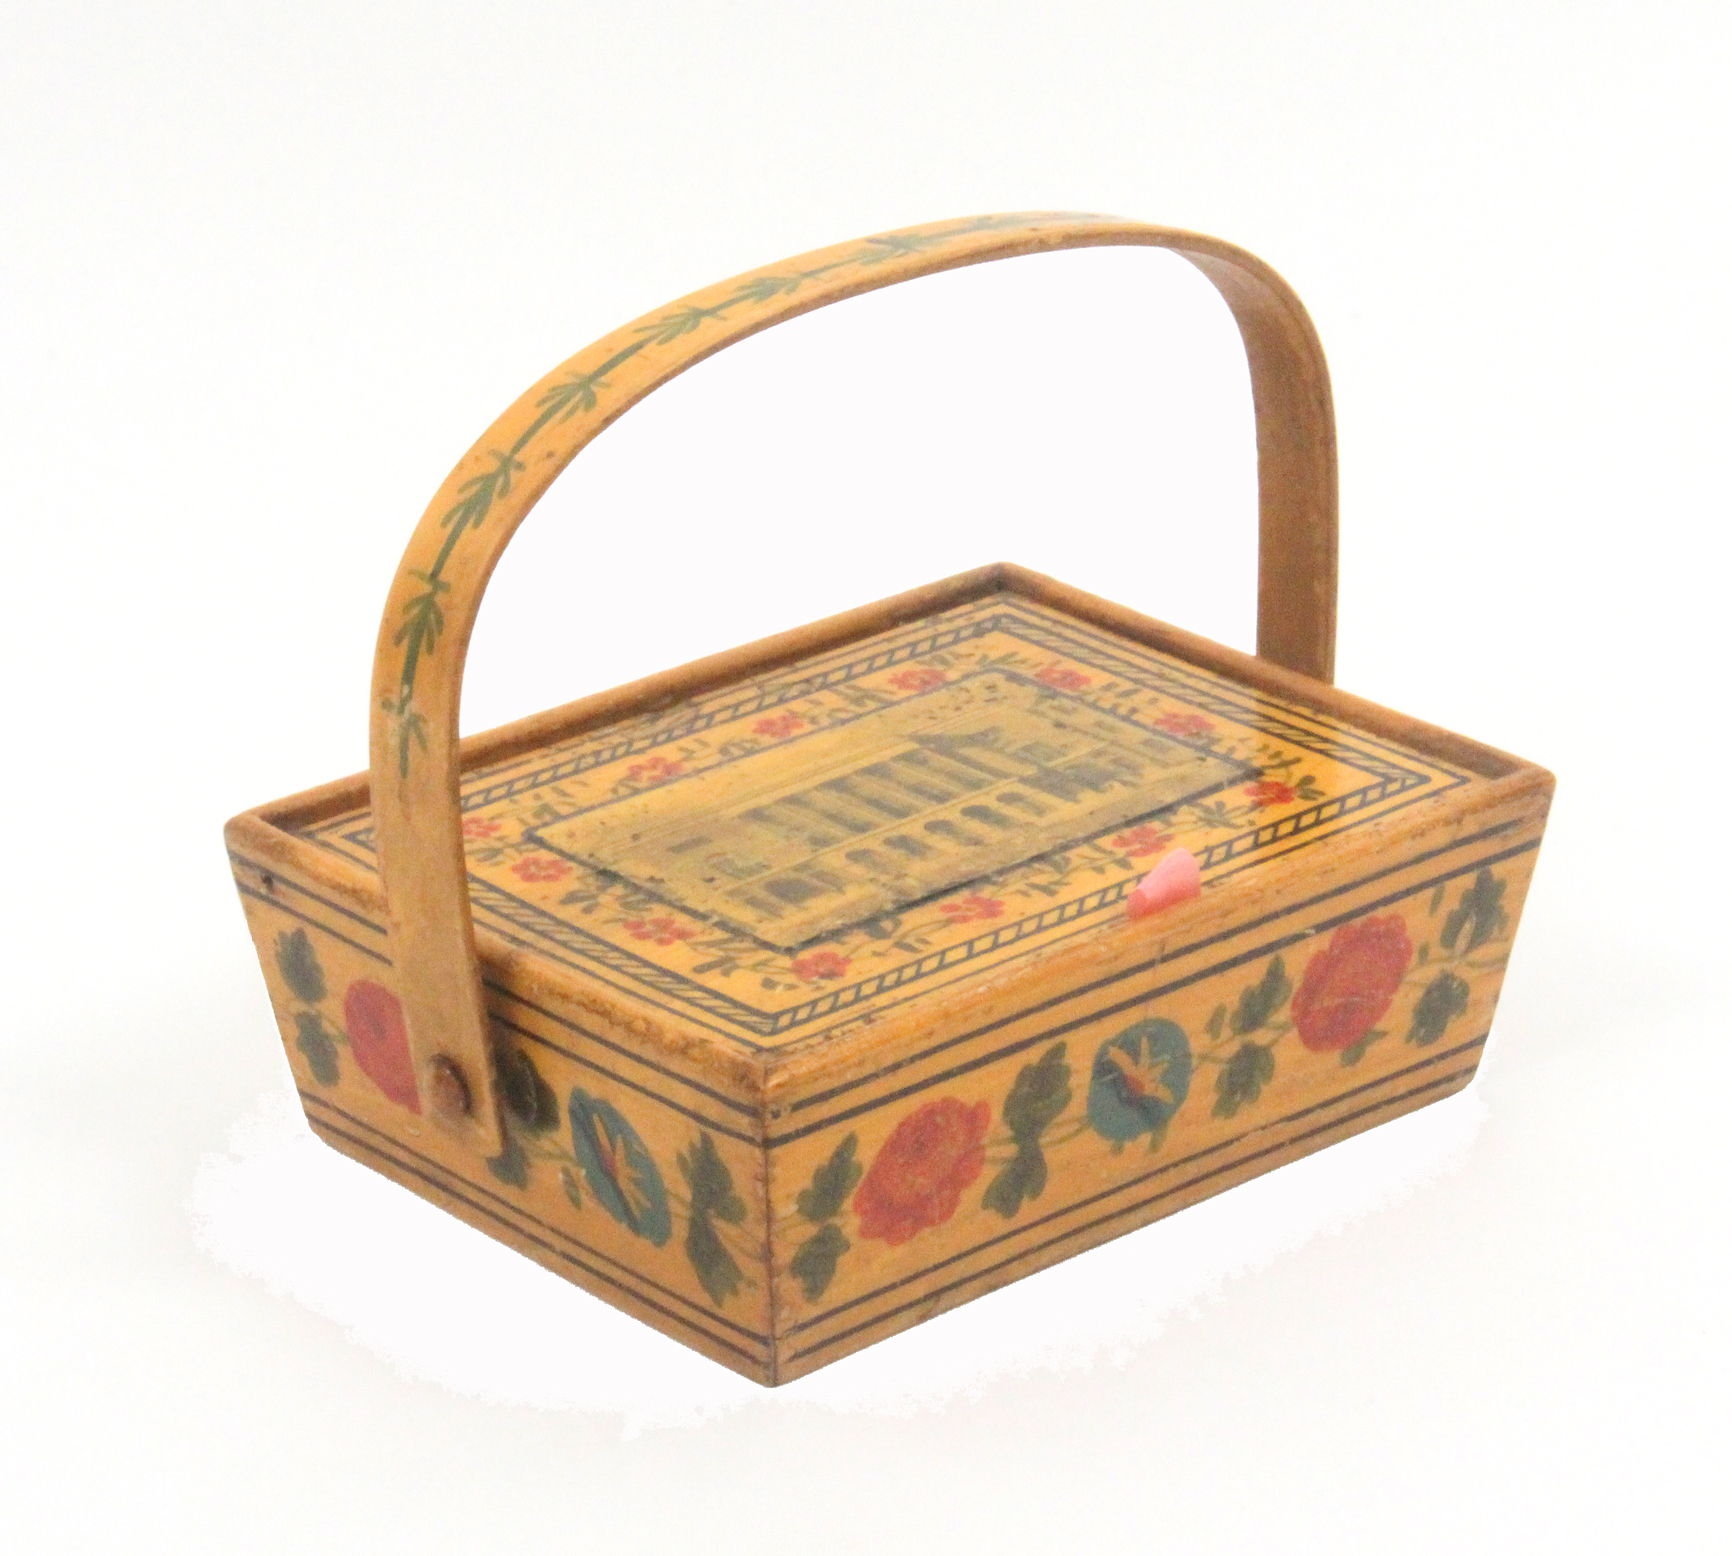 Lot 60 - A rare print and paint decorated early Tunbridge ware whitewood child's sewing pannier, probably